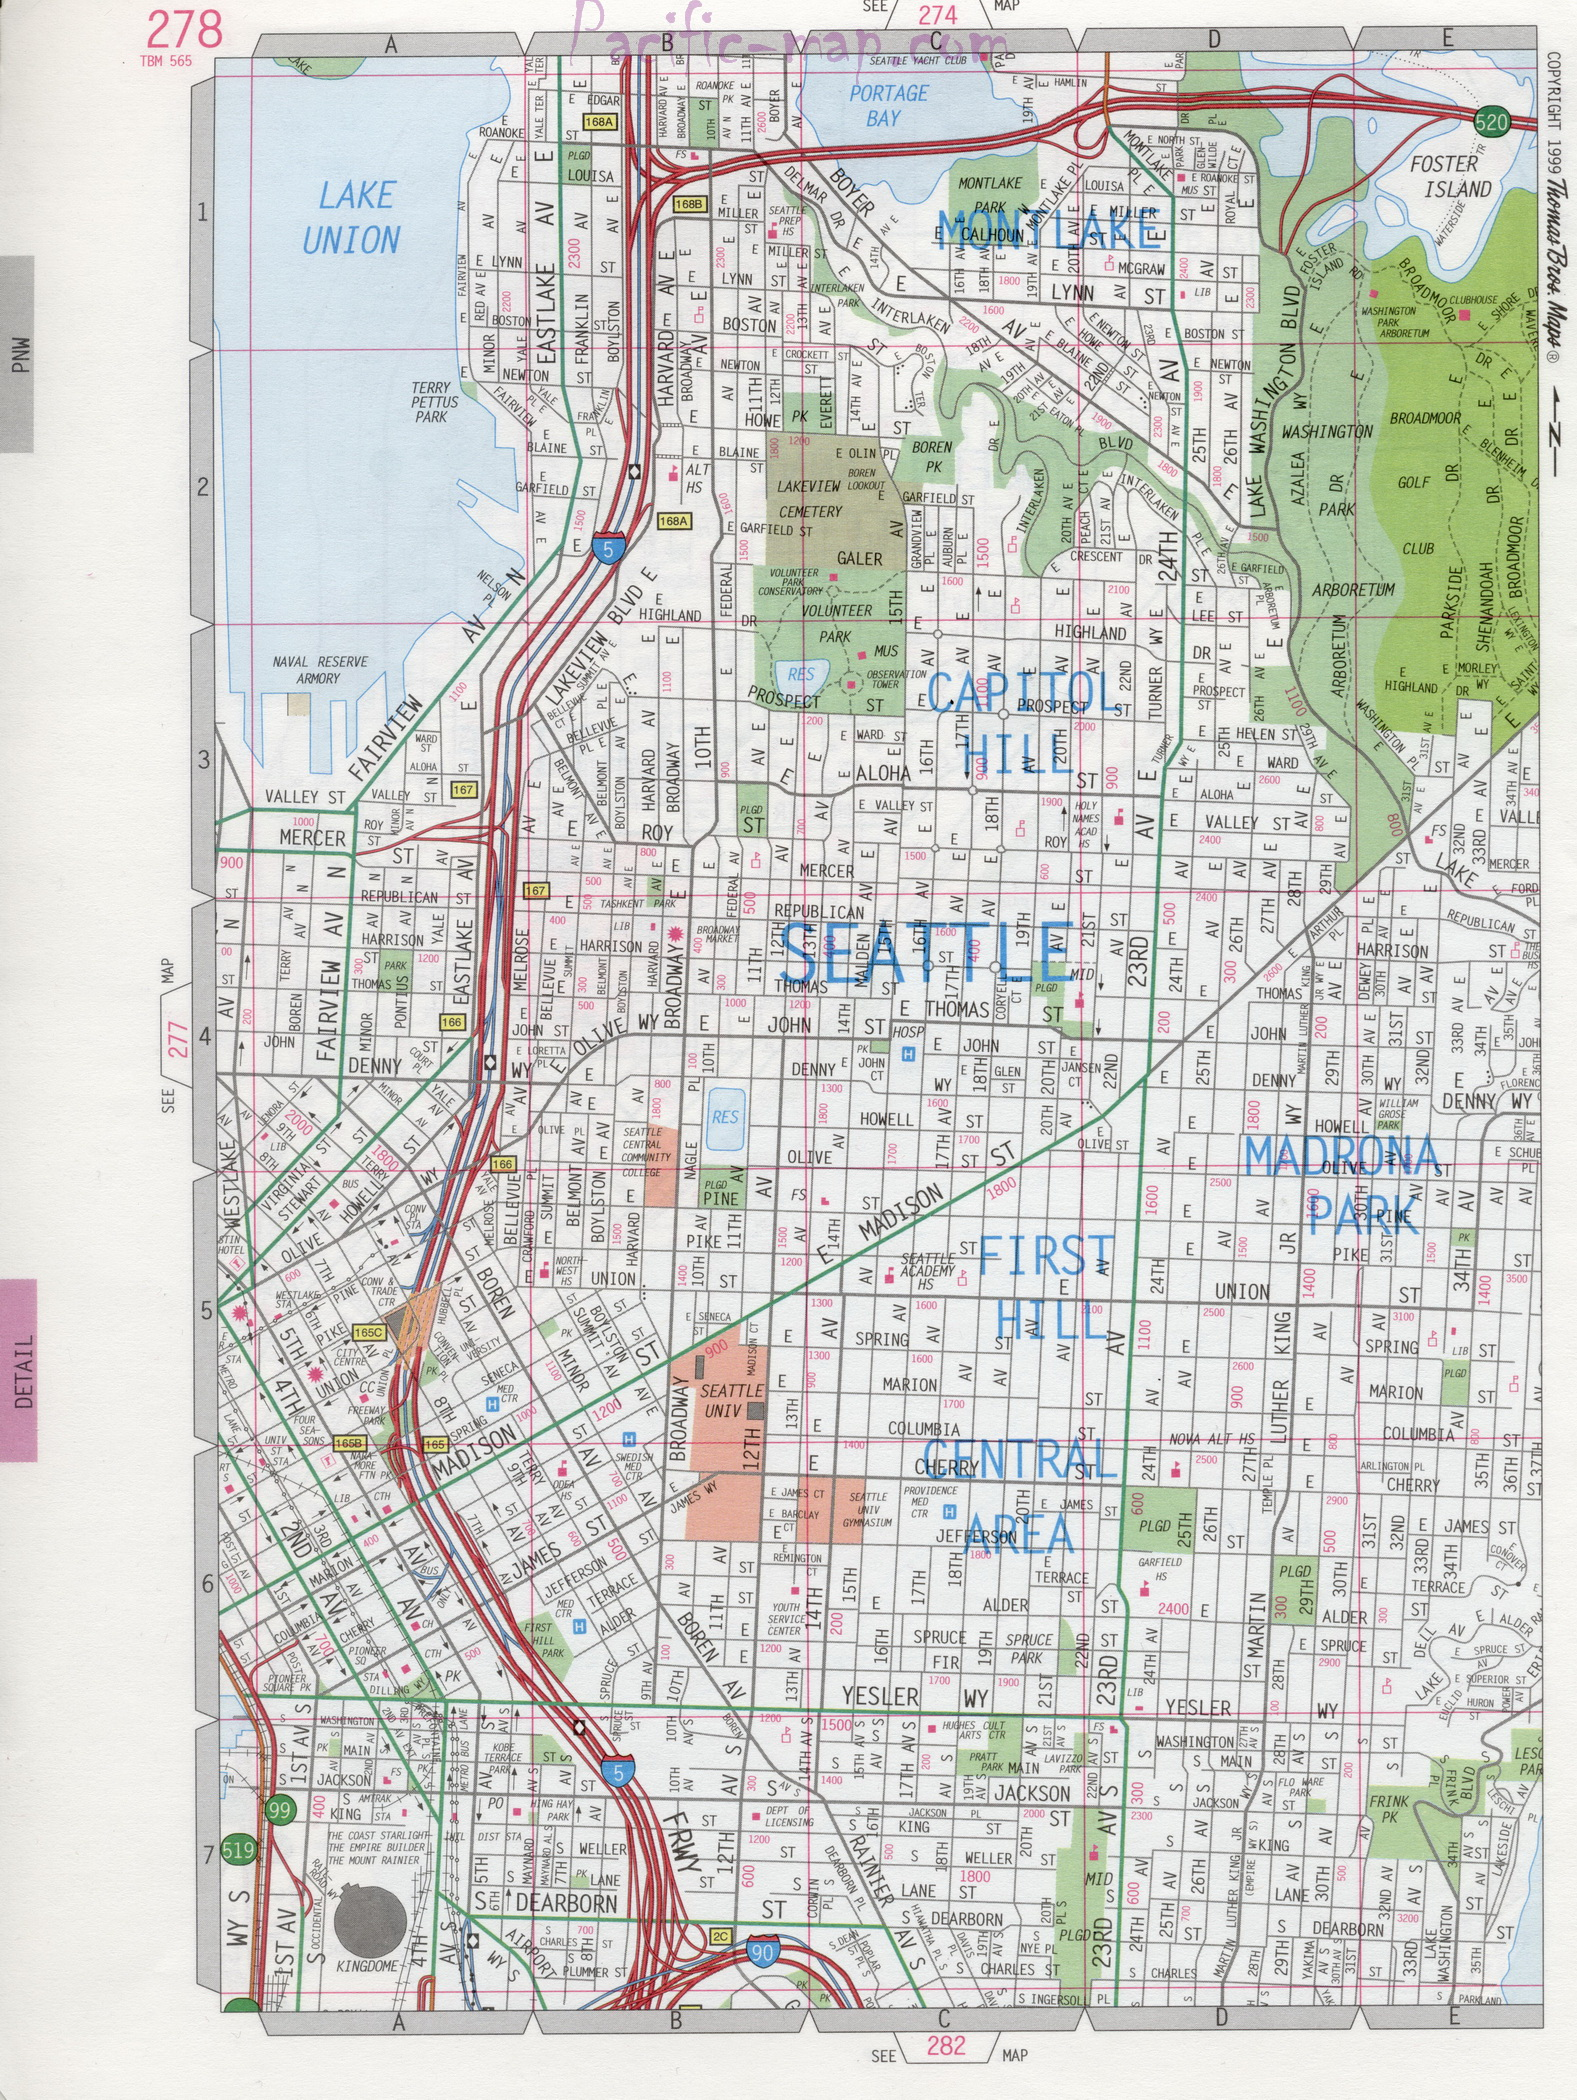 Seattle WA road map on seattle city limits map, united states map, downtown seattle map, st. louis map, austin texas map, seattle wa, seattle neighborhood map, mount rainier map, spanaway washington map, oregon map, washington state map, usa map, city of seattle boundary map, lynnwood washington map, puget sound washington map, georgetown seattle map, world map, tulsa oklahoma map, sequim washington map,